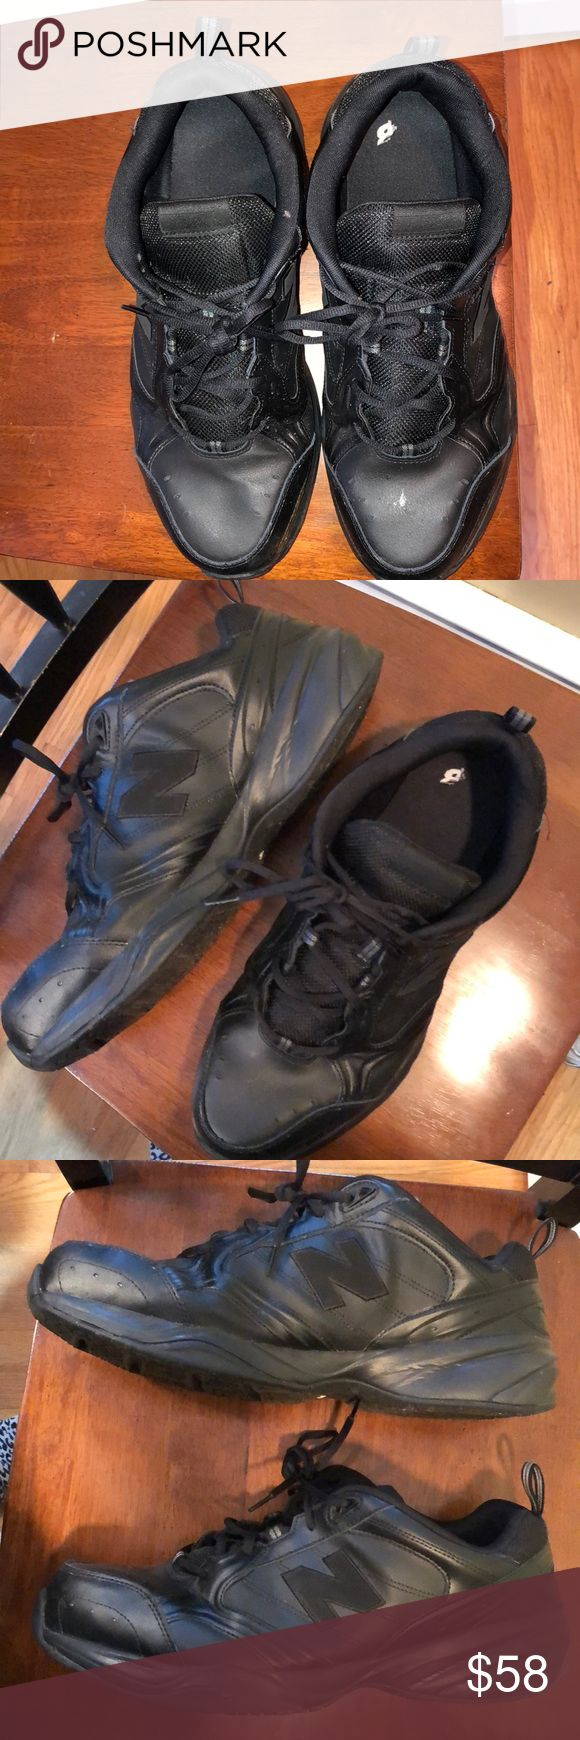 NEW BALANCE SIZE 16 6E all Black walking shoes Great for work on feet, stage crew, food service  Size 16 Men's width: 6E New balance  Worn 4 times , no box included New Balance Shoes Sneakers